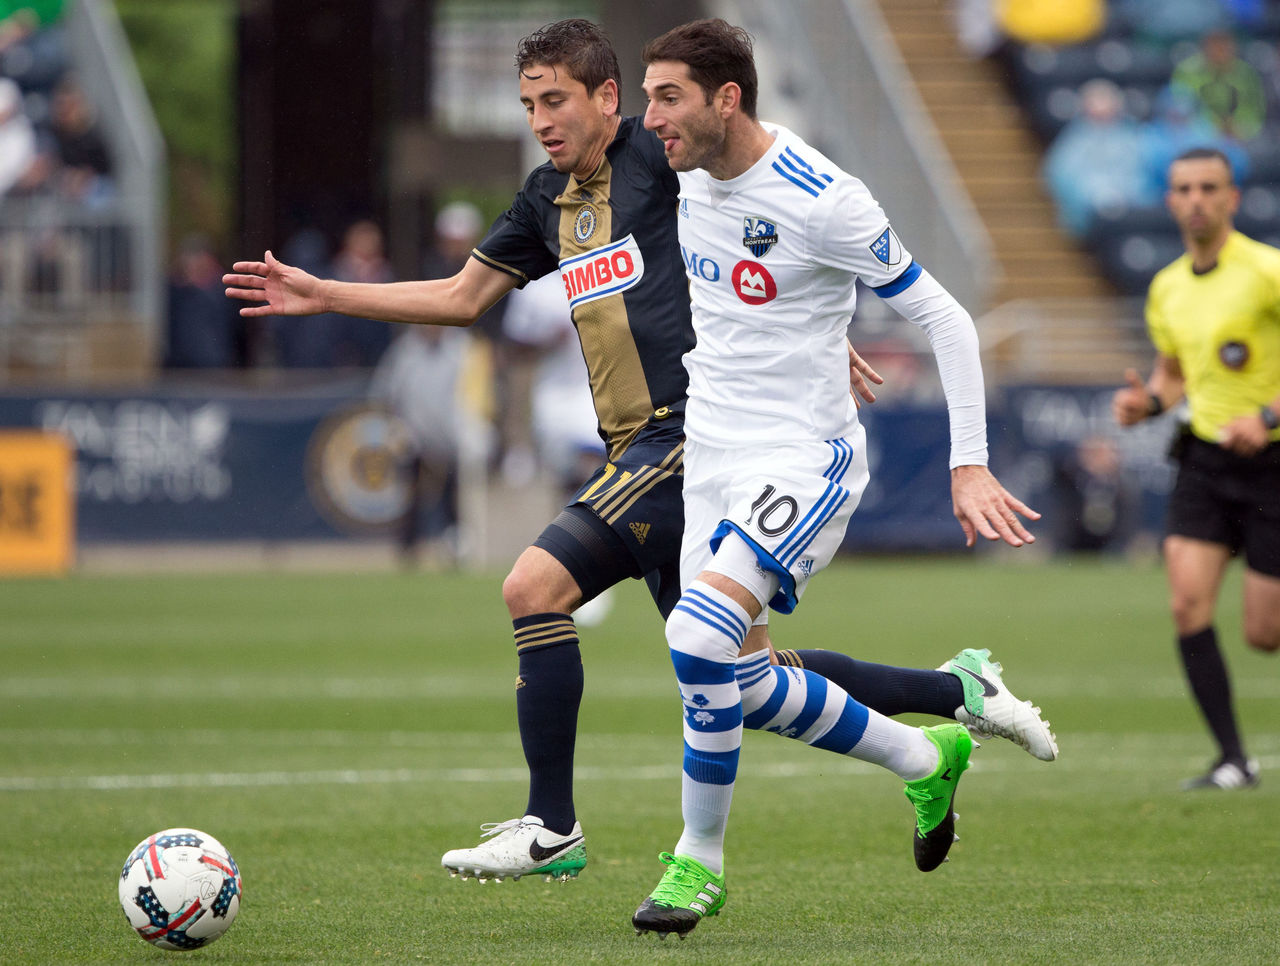 Cropped 2017 04 22t181804z 1317719092 nocid rtrmadp 3 mls montreal impact at philadelphia union